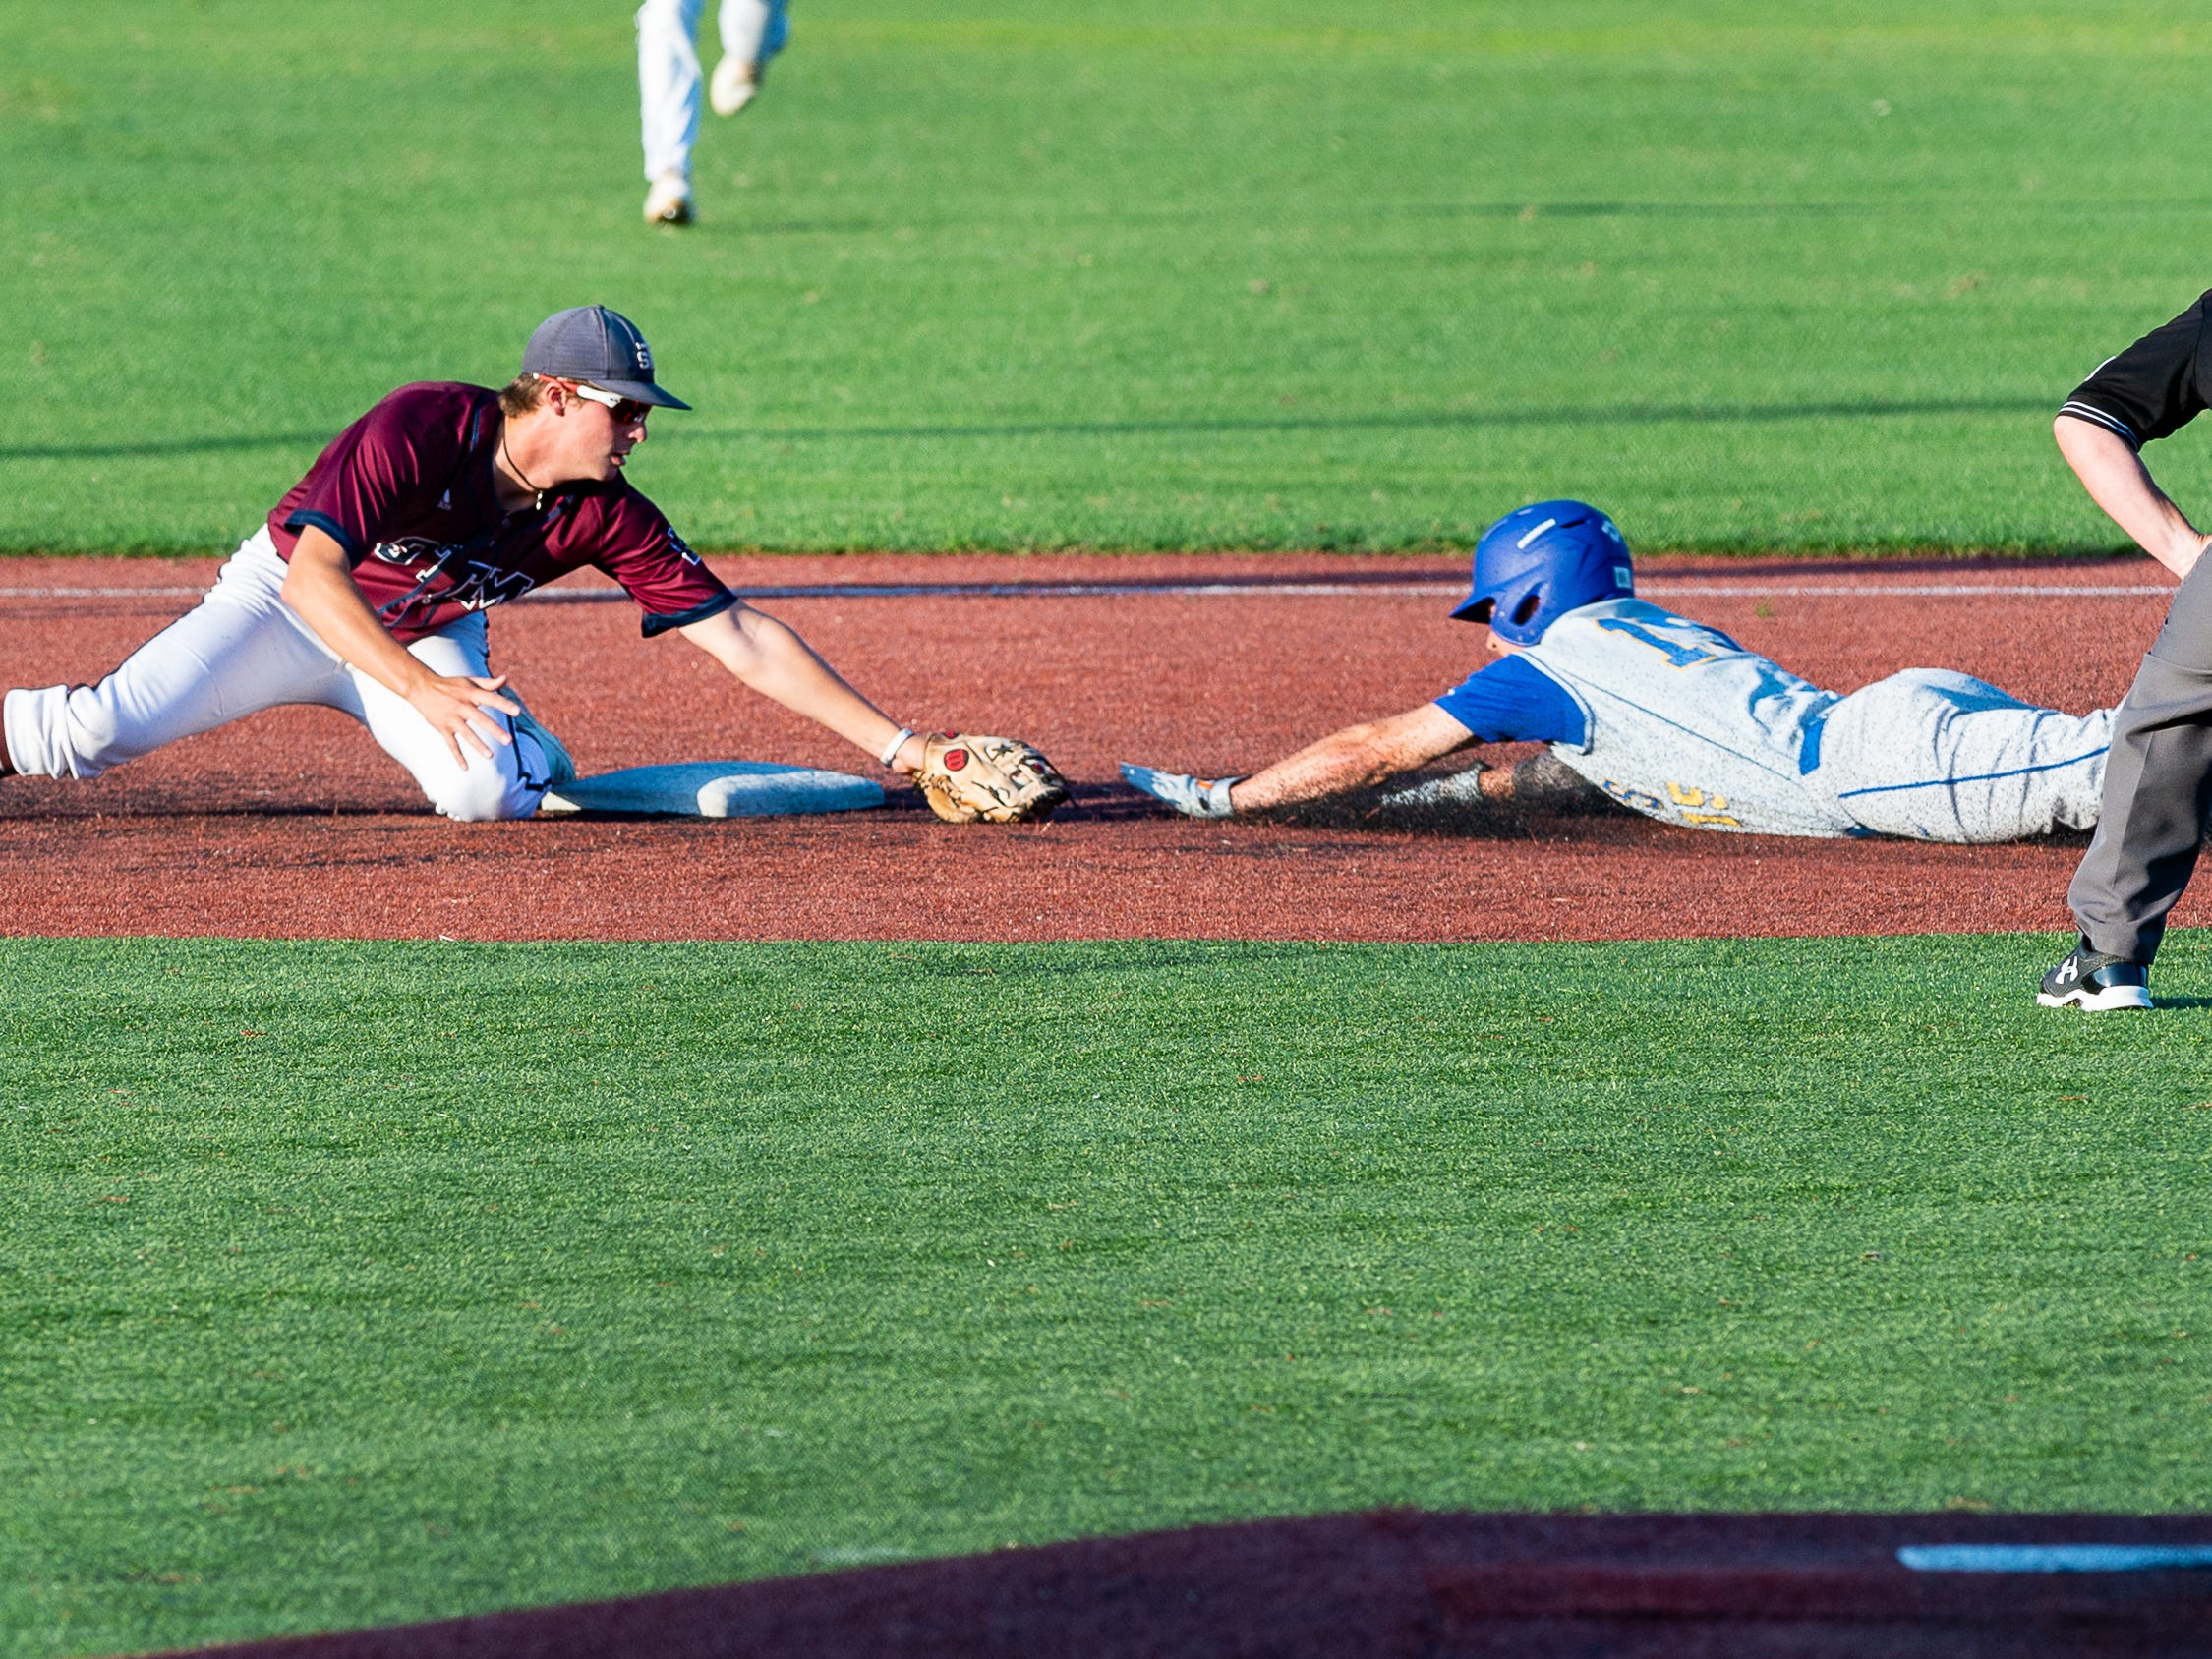 Connor Duffy makes the tag to get the out to end the inning as St Thomas More takes on St Charles  in the Div II semi final round at the LHSAA State Championship. . Sunday, May 12, 2019.